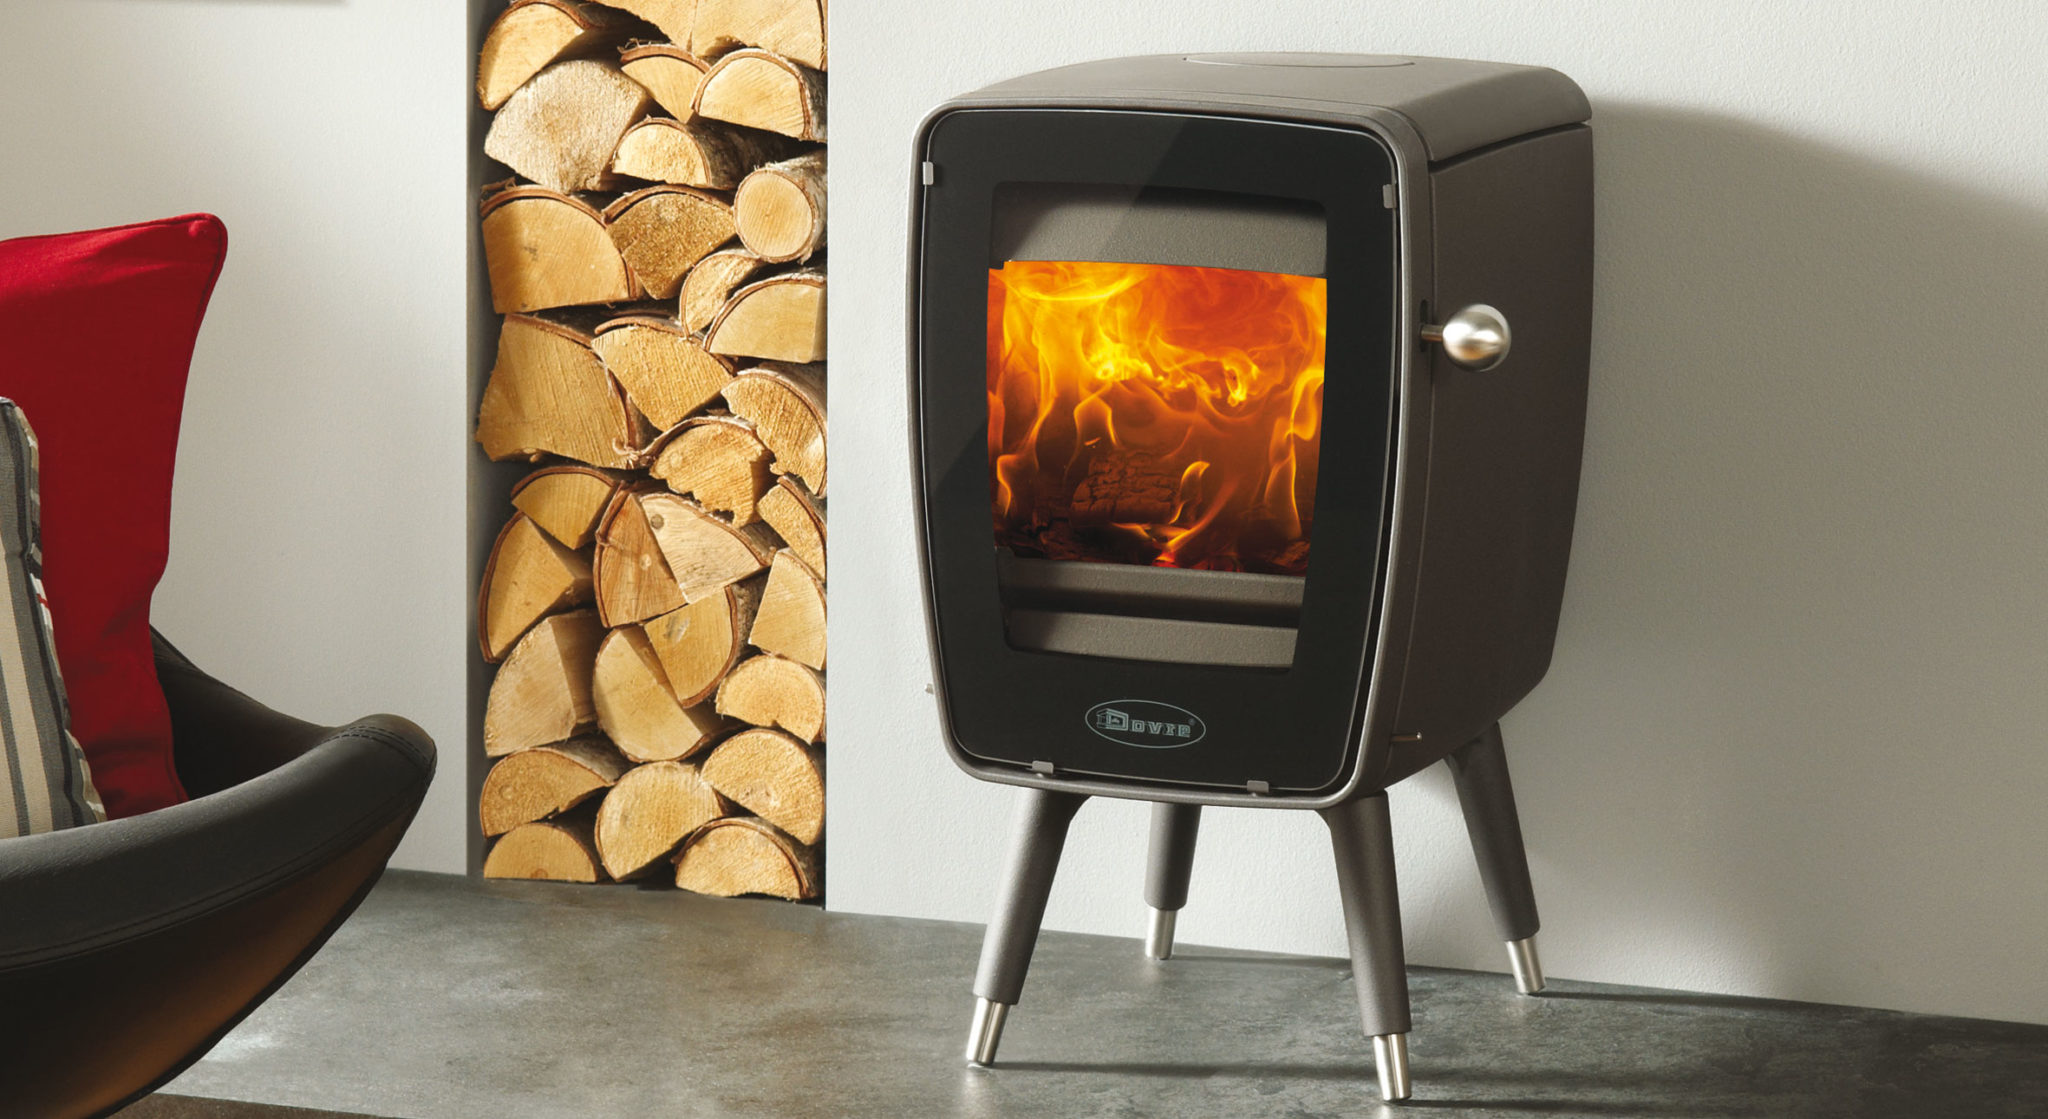 Revive Retro Styling with Dovre Vintage Stoves